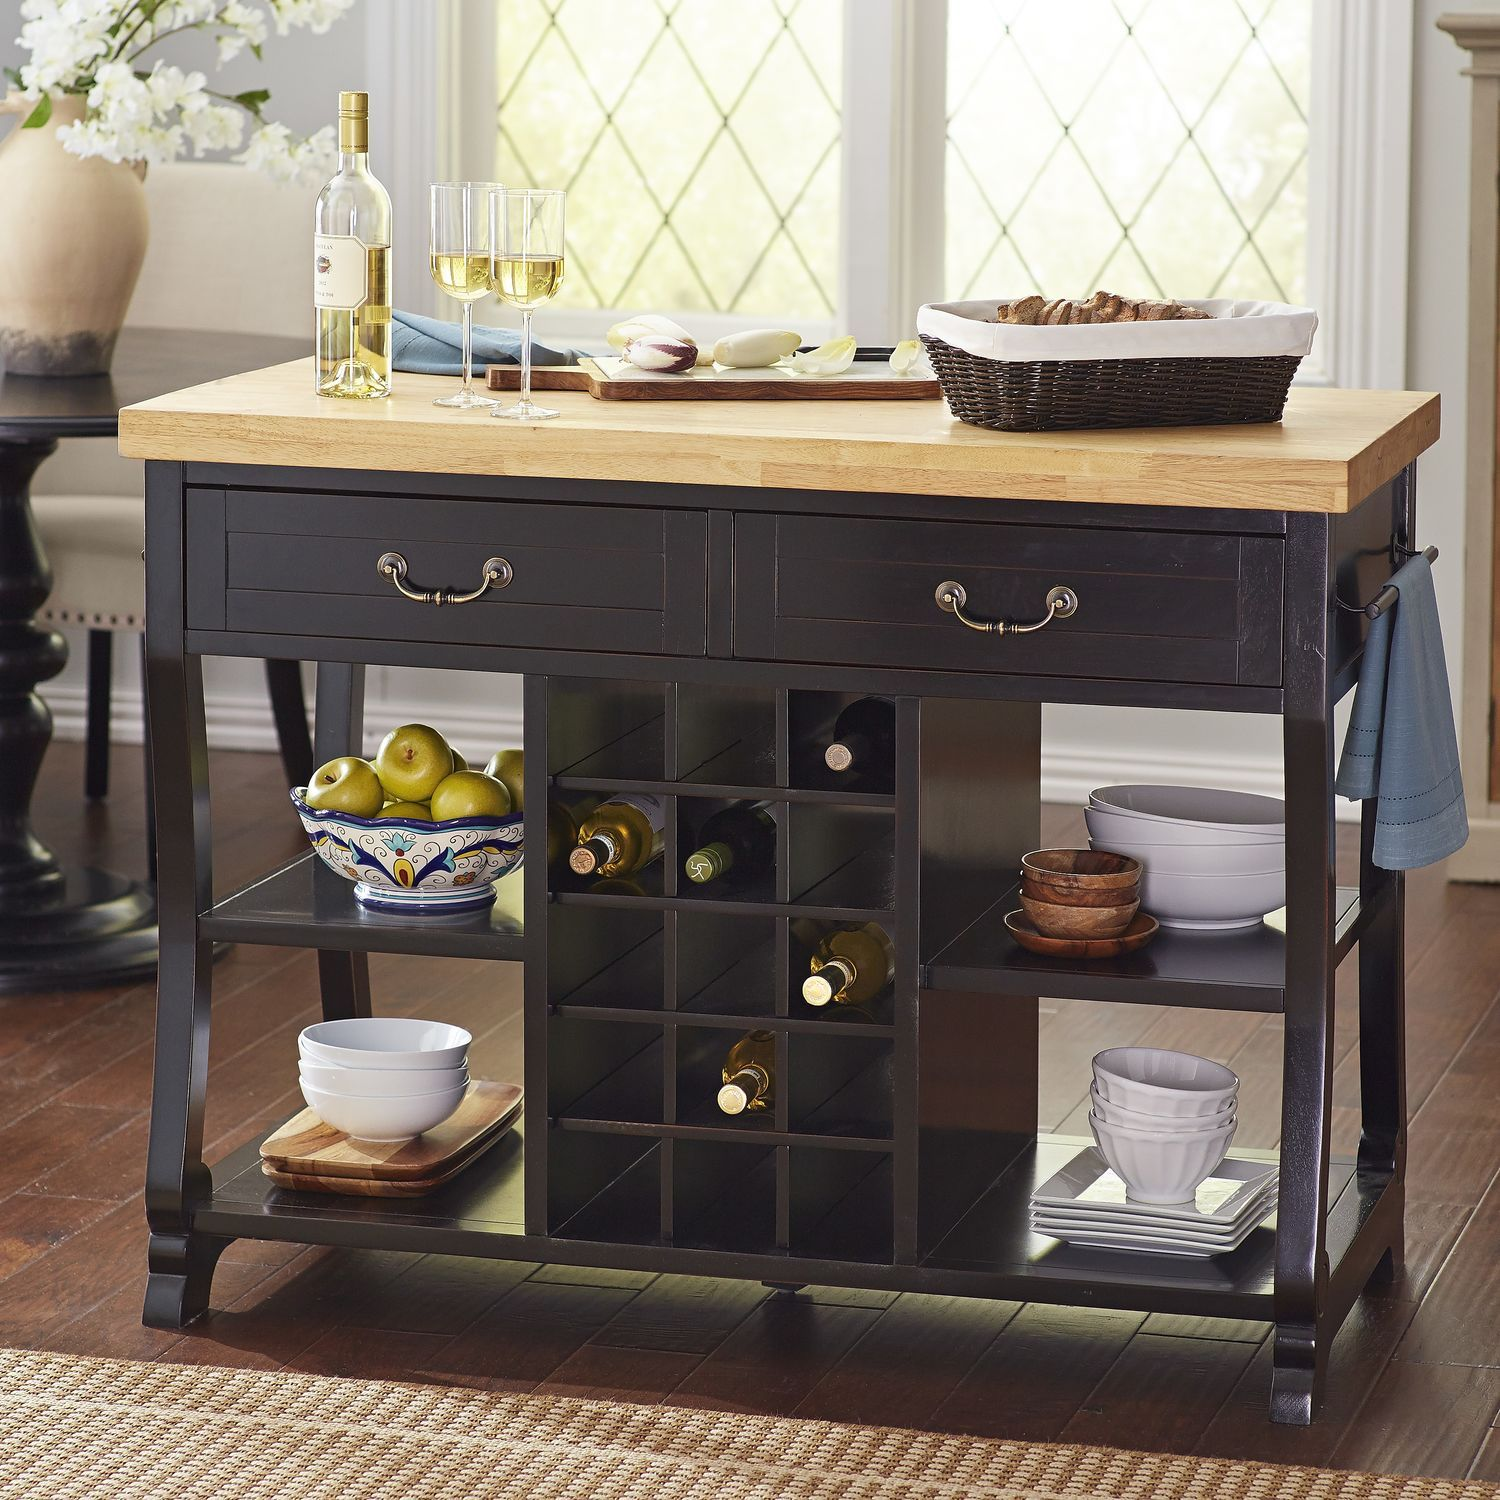 Marchella Kitchen Island